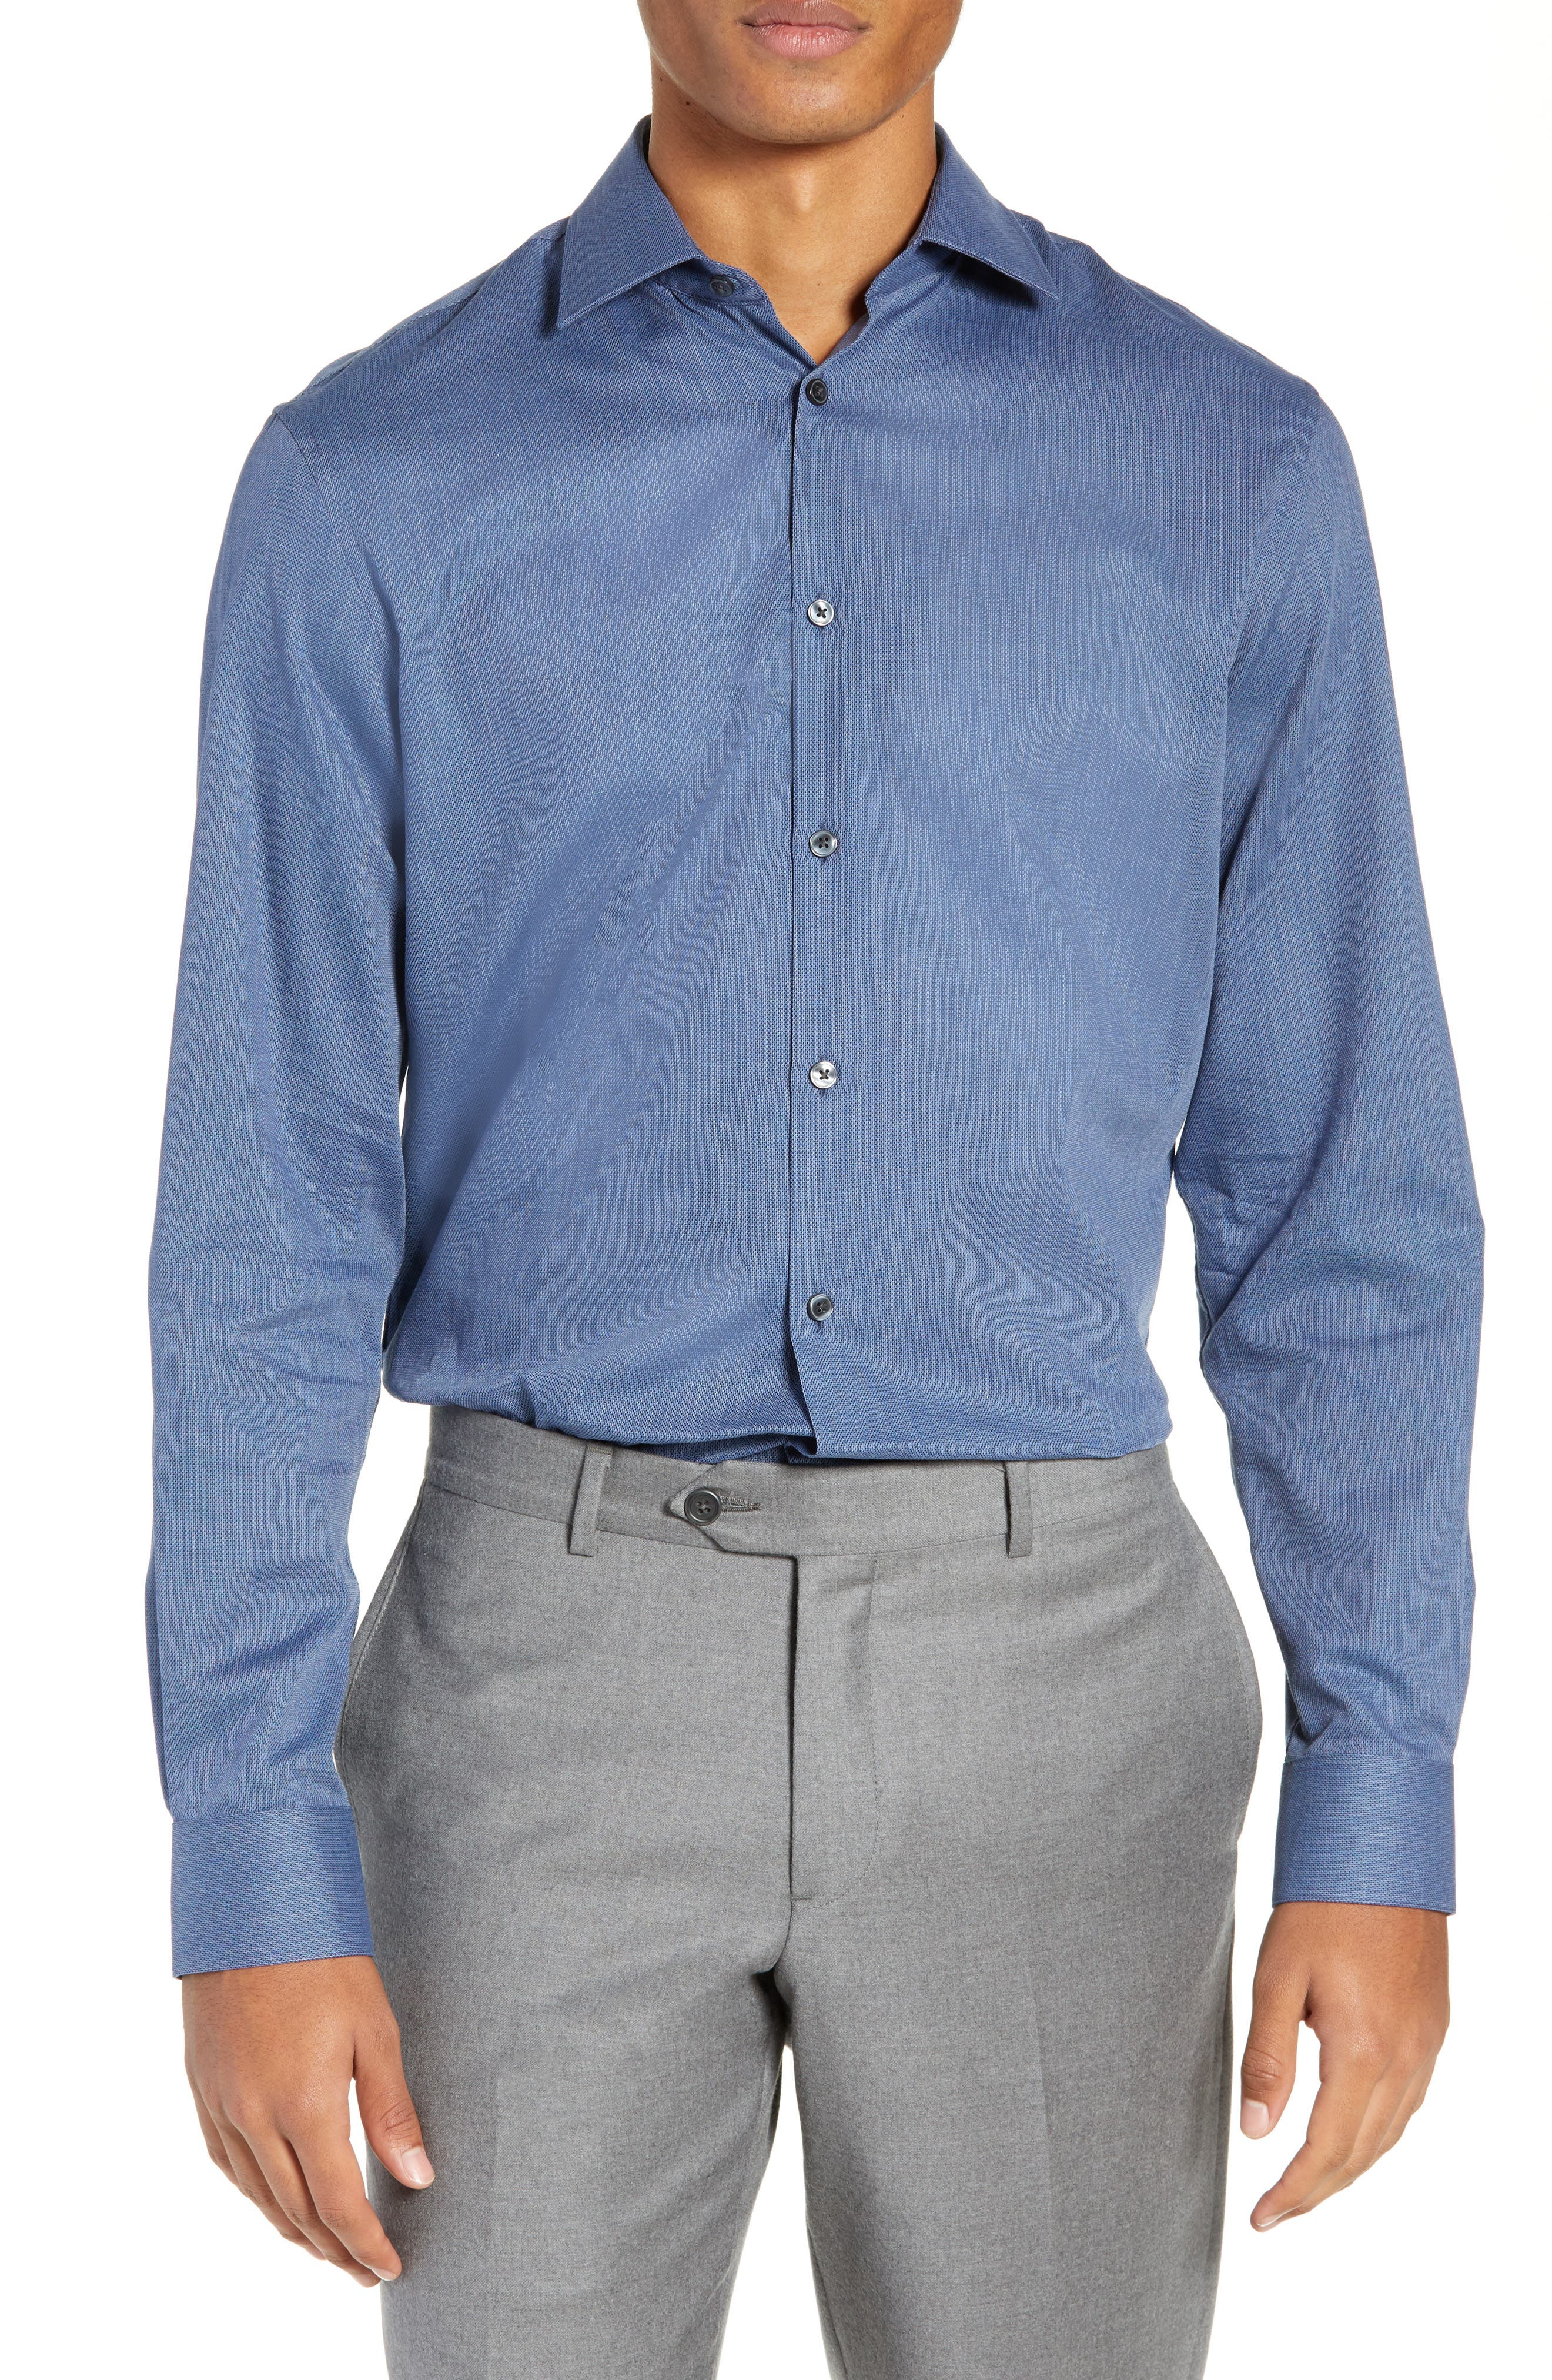 Regular Fit Solid Dress Shirt,                             Main thumbnail 1, color,                             DARK BLUE HEATHER